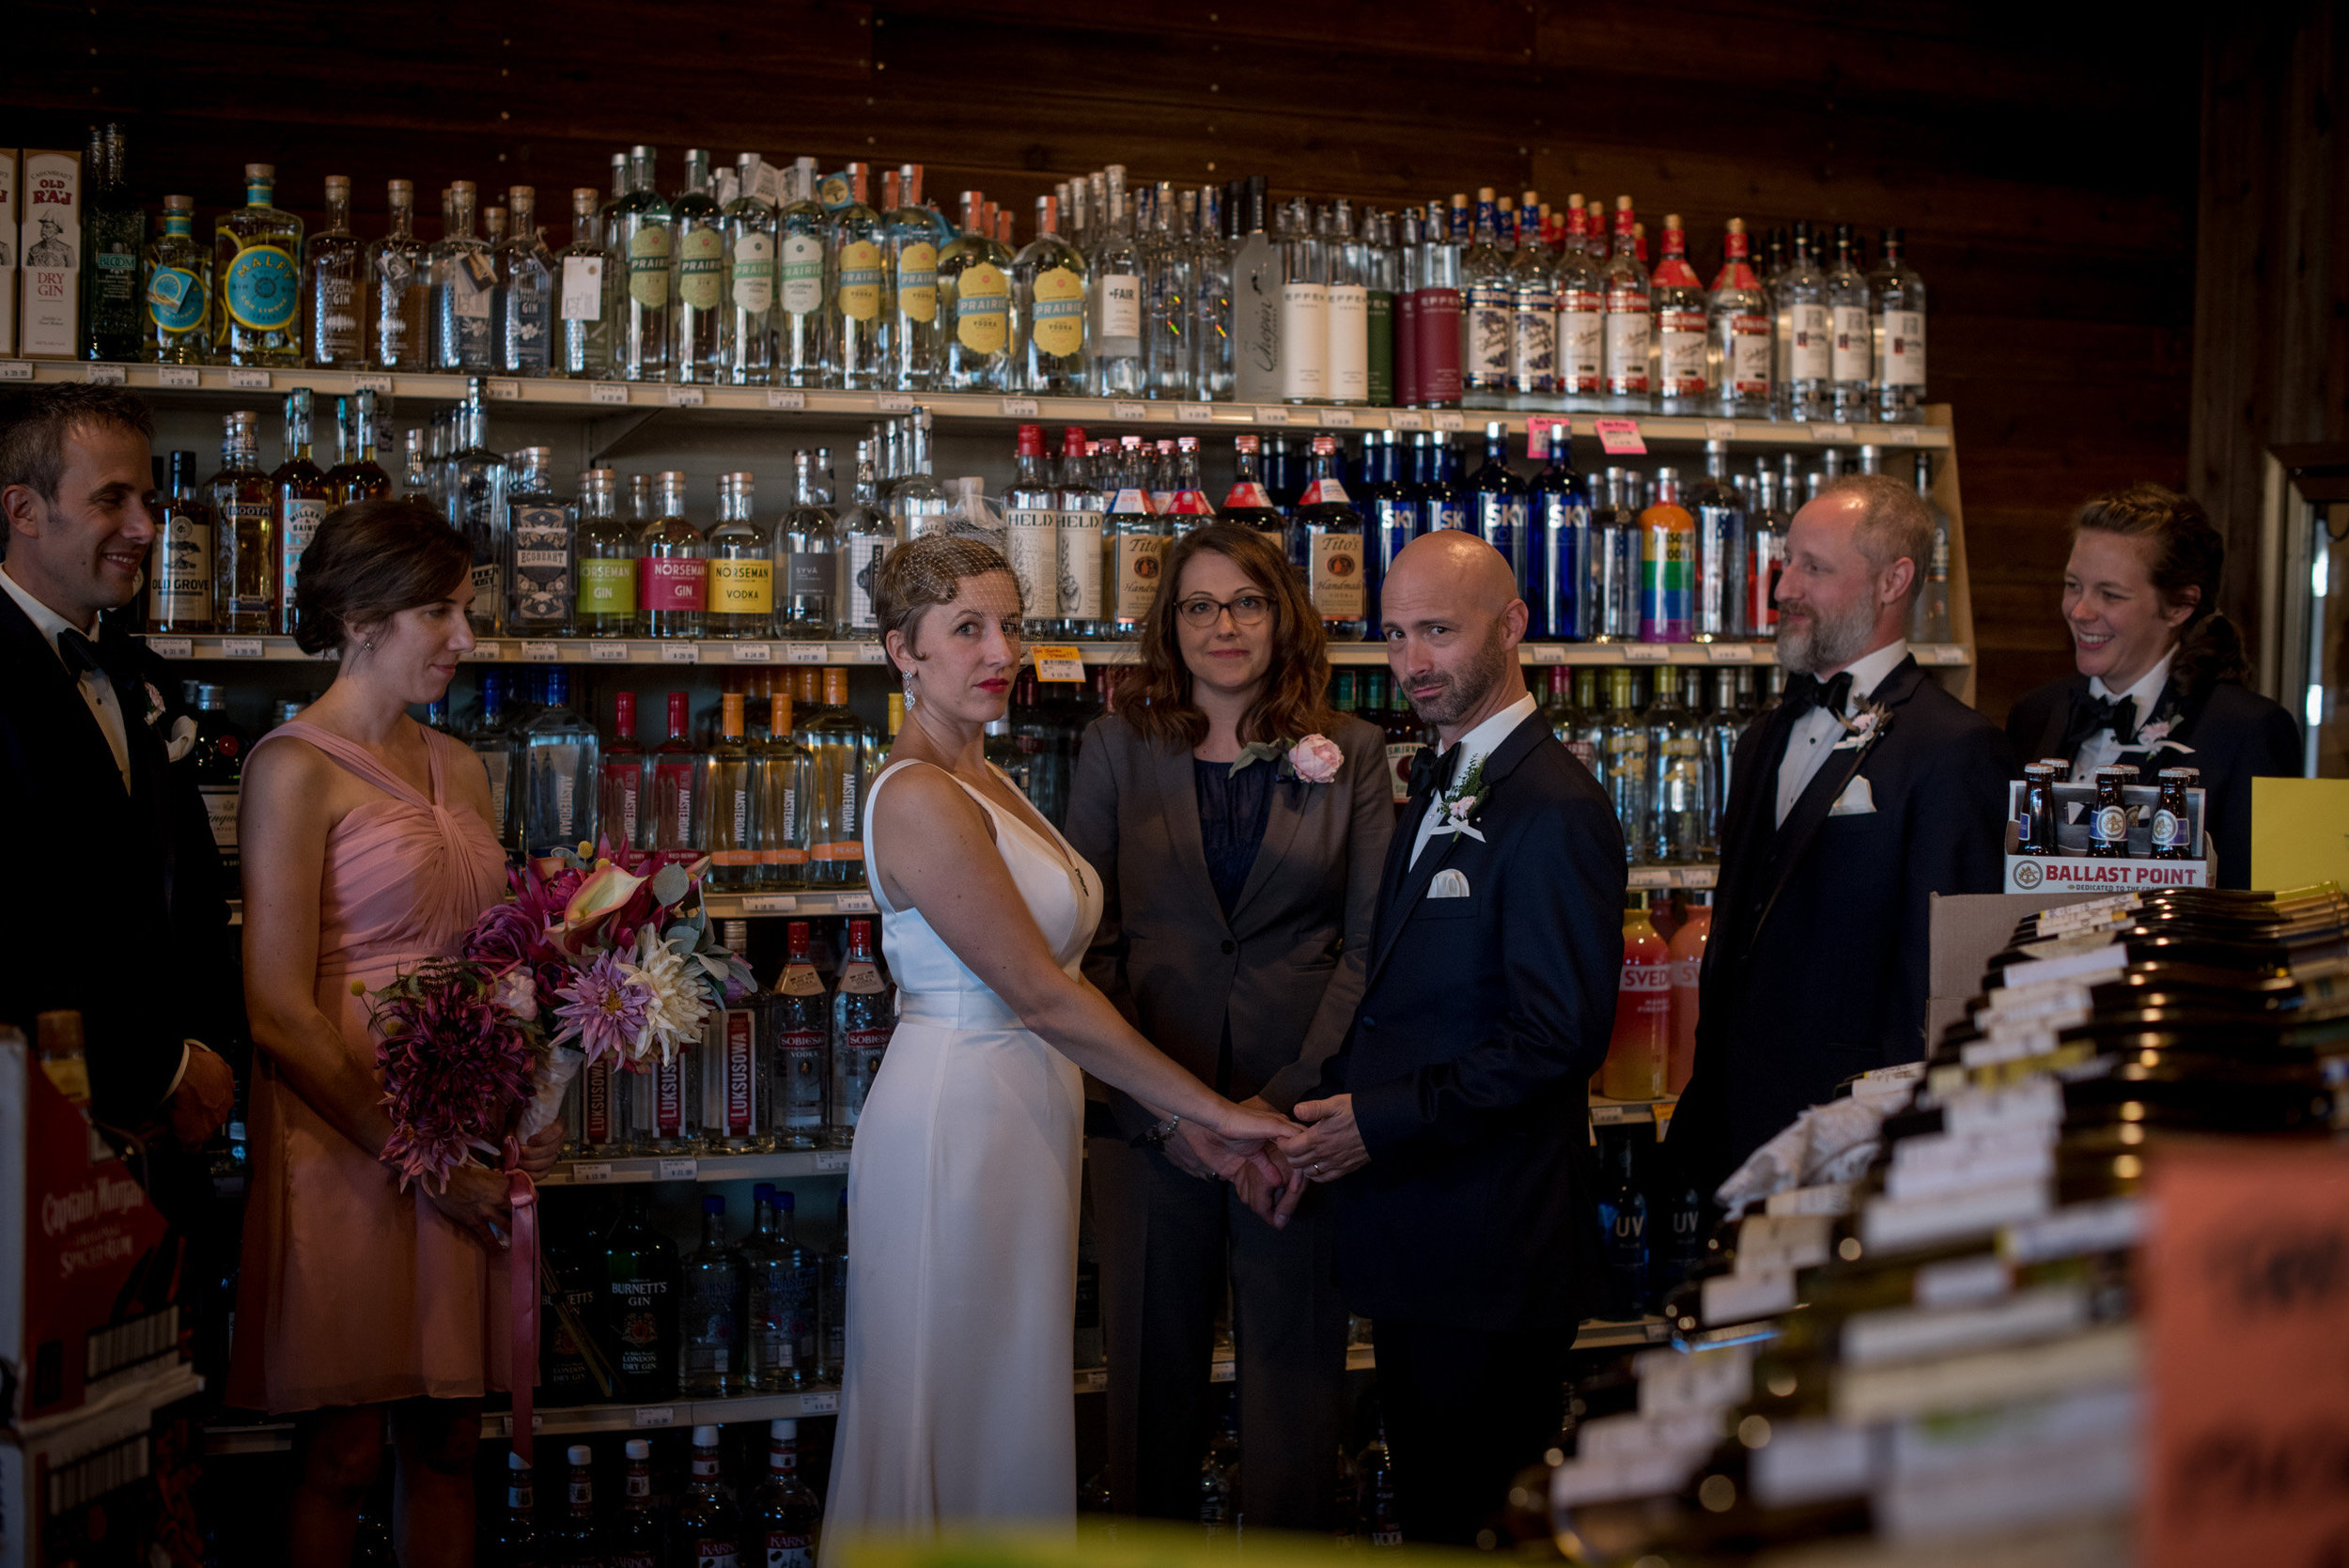 get married in a liquor store, though. it's the new craze.